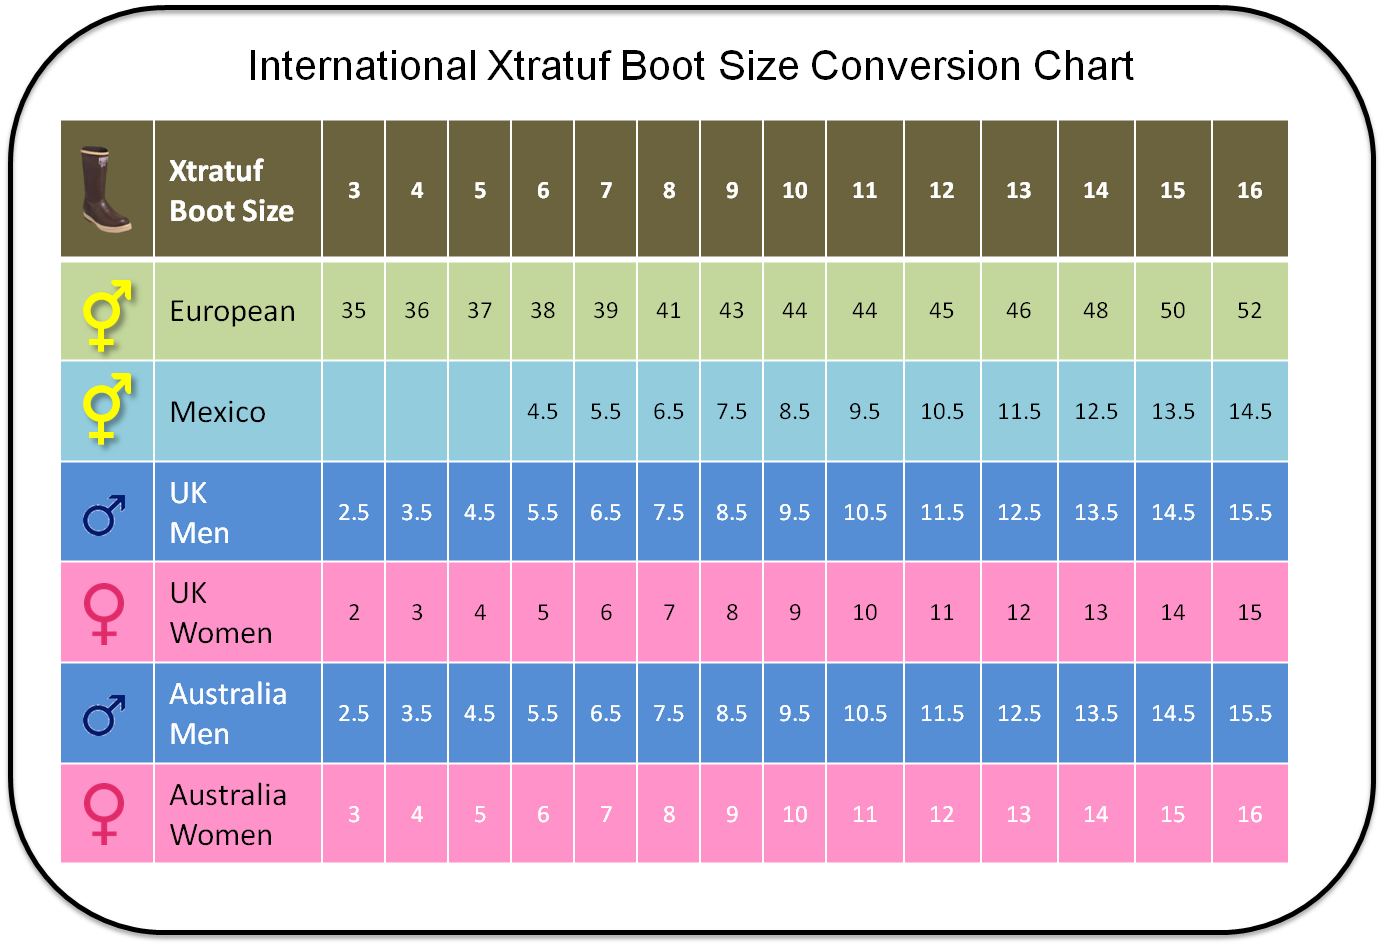 Shoe Size Charts for Men, Women and Children